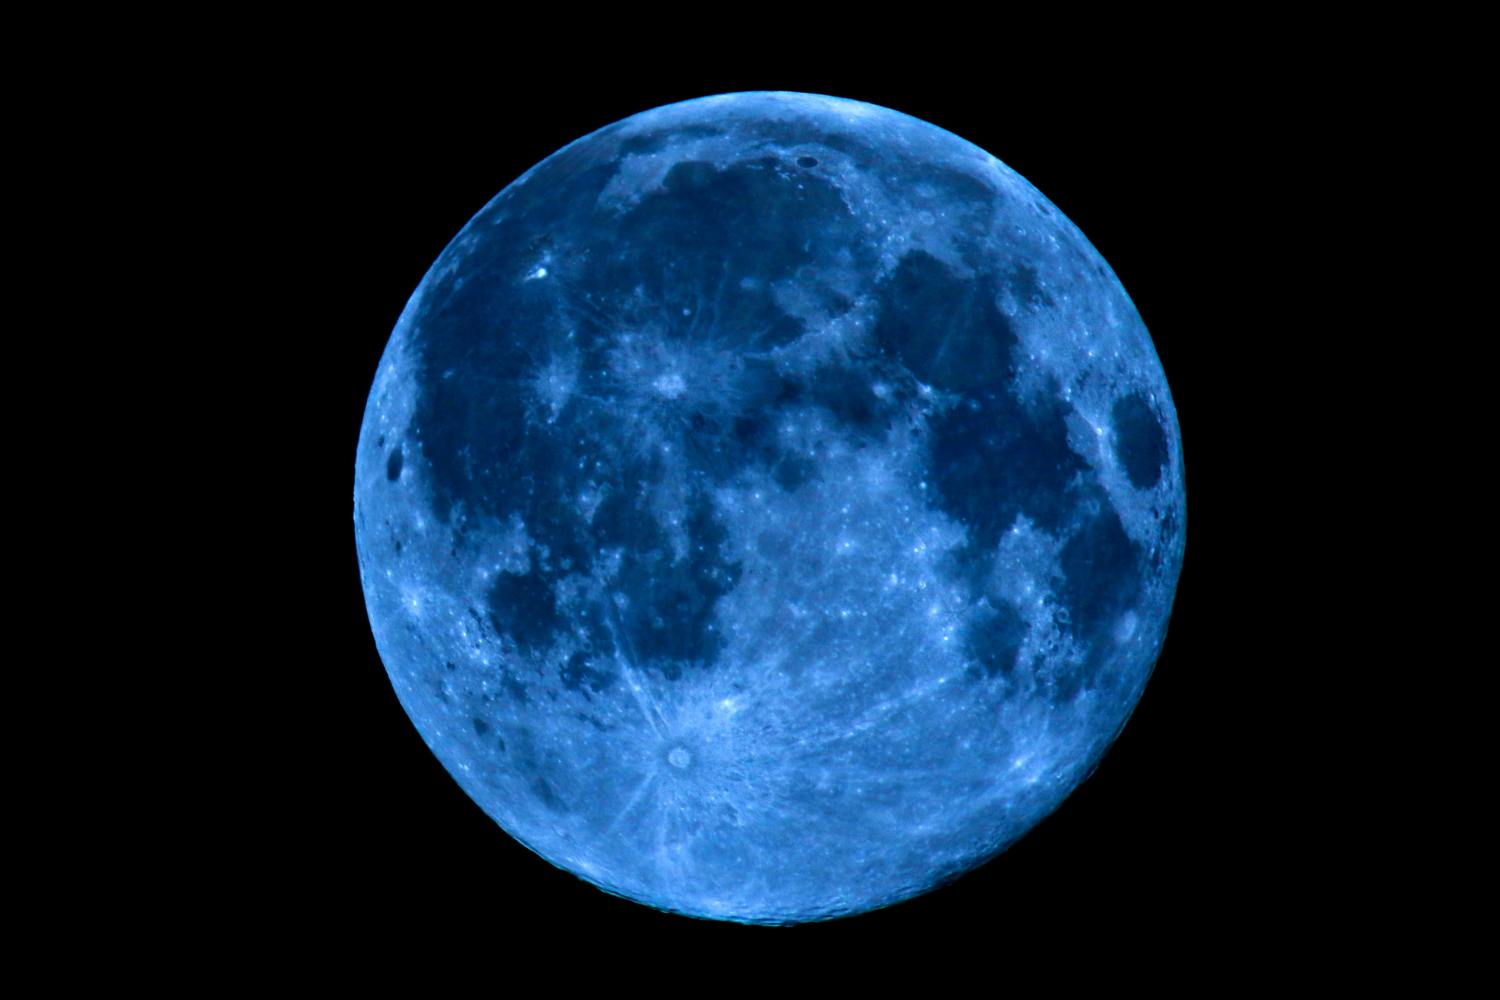 Halloween Oct 31st, 2020 Comes With A Rare Blue Moon